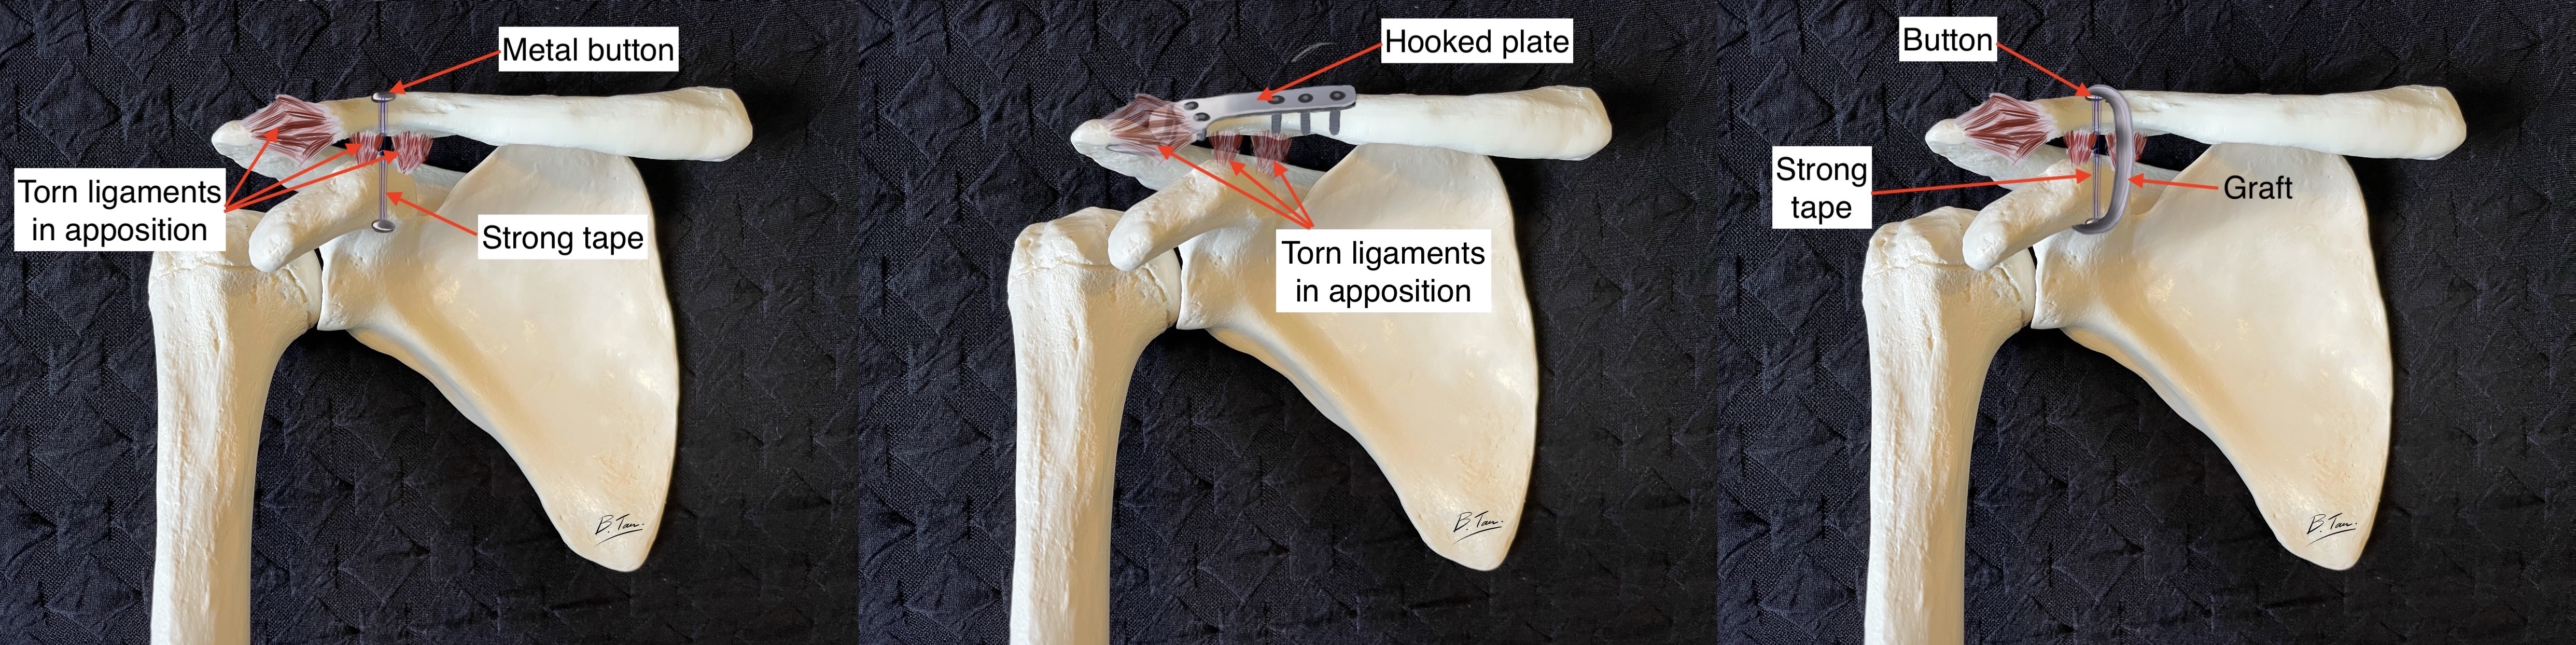 Suspensory vs hooked plate vs graft acromioclavicular joint reconstruction